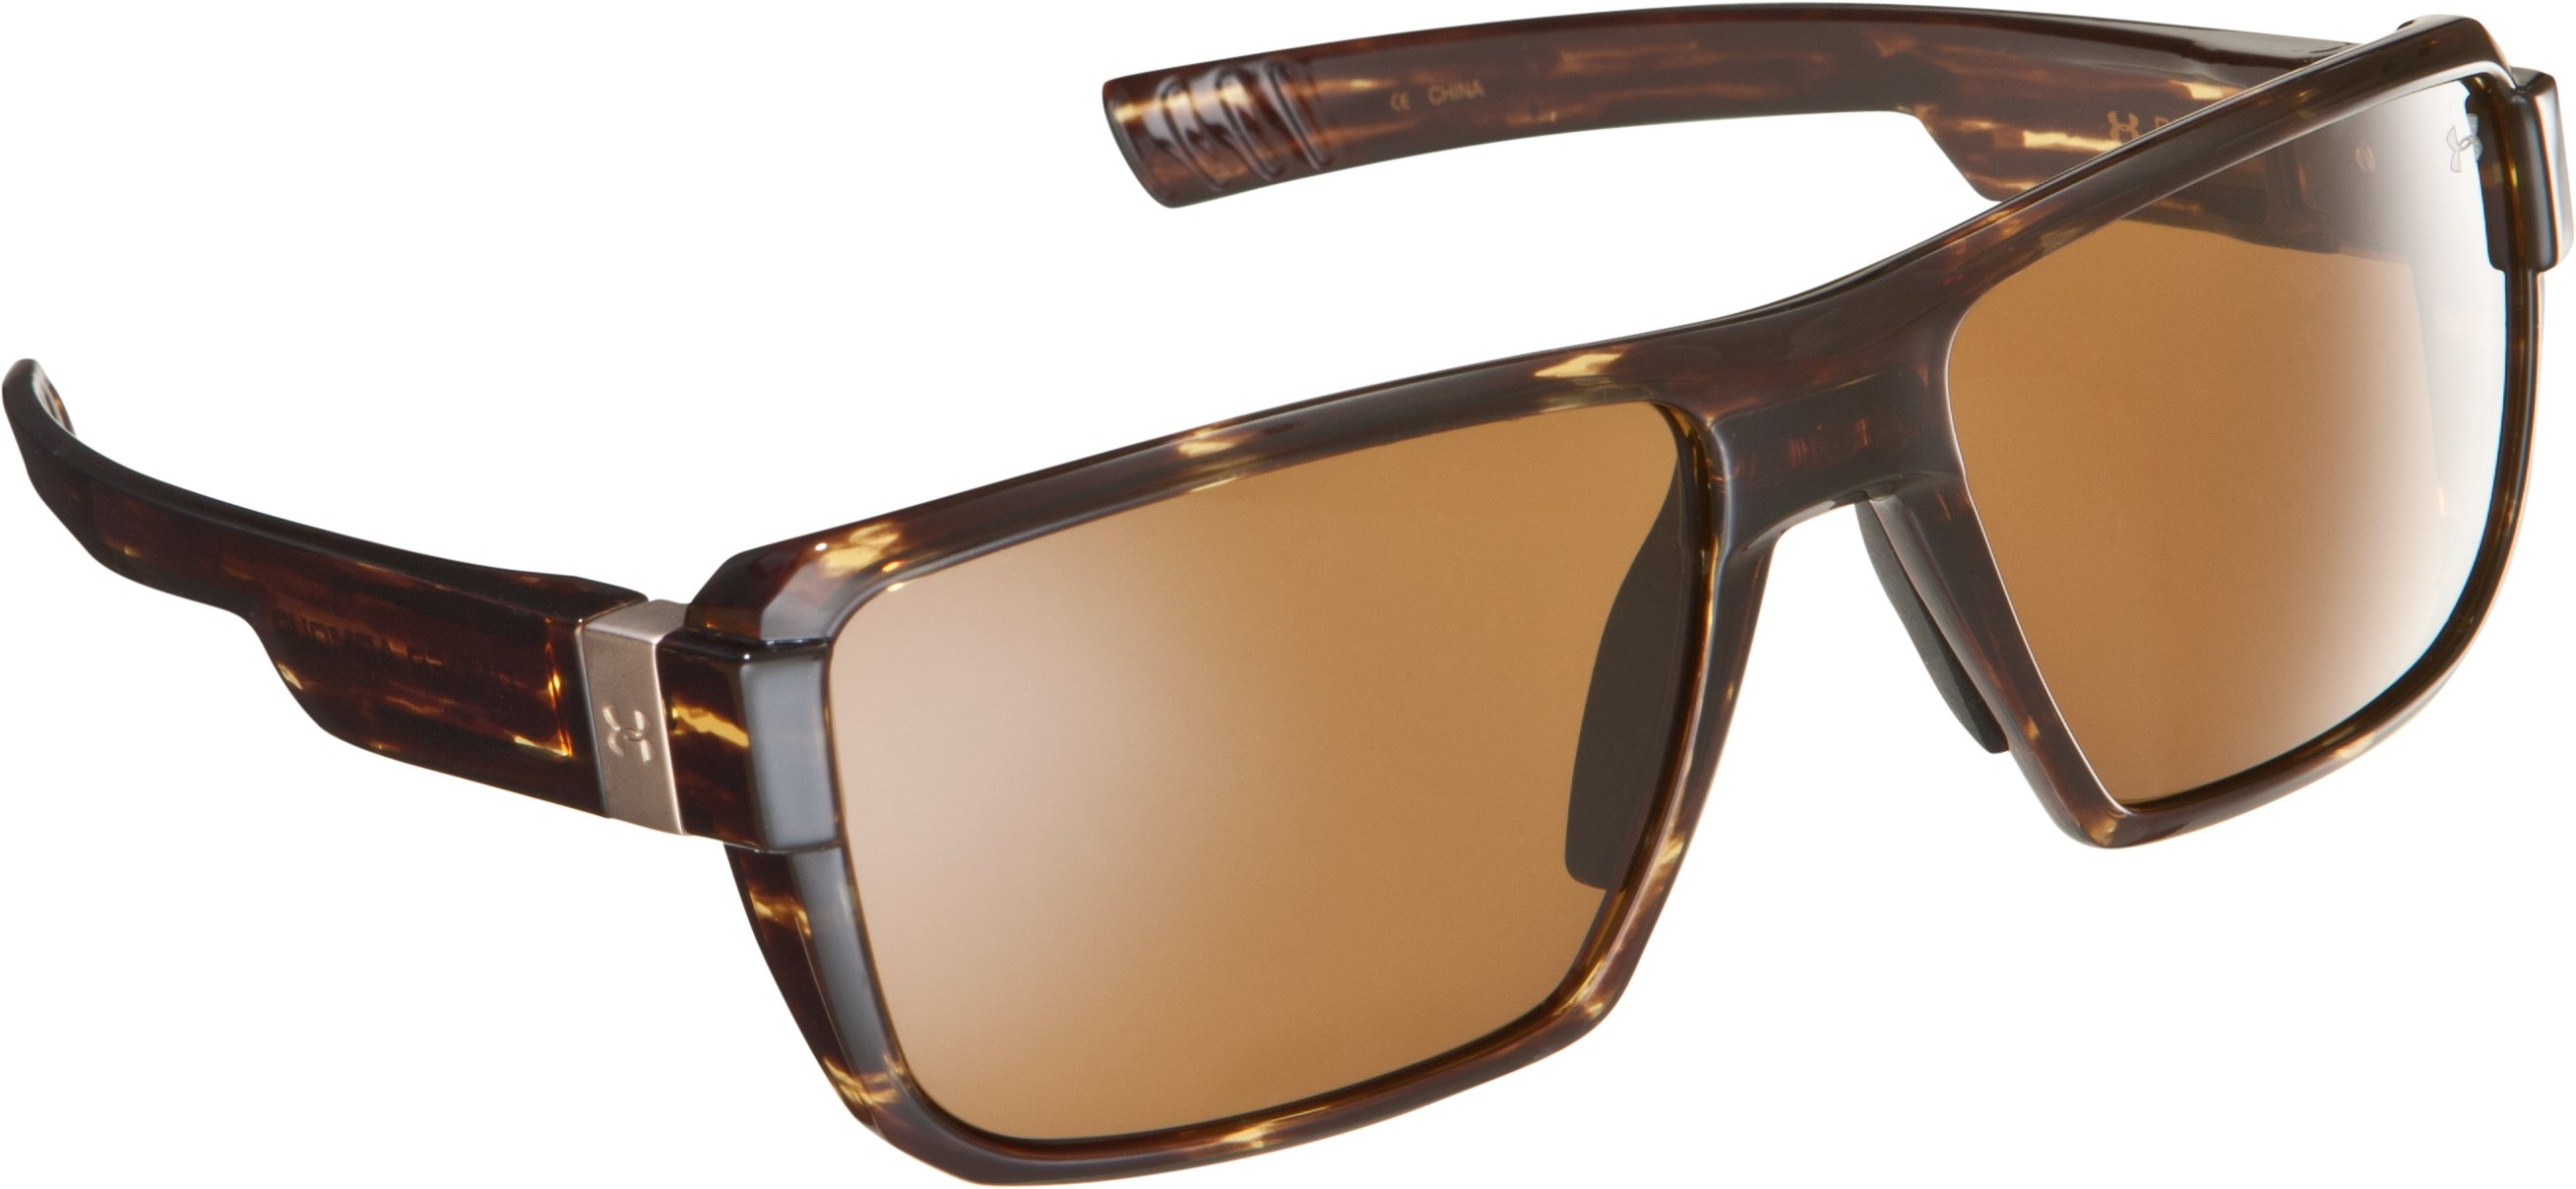 Women's UA Recon Sunglasses, Fire Tortoise